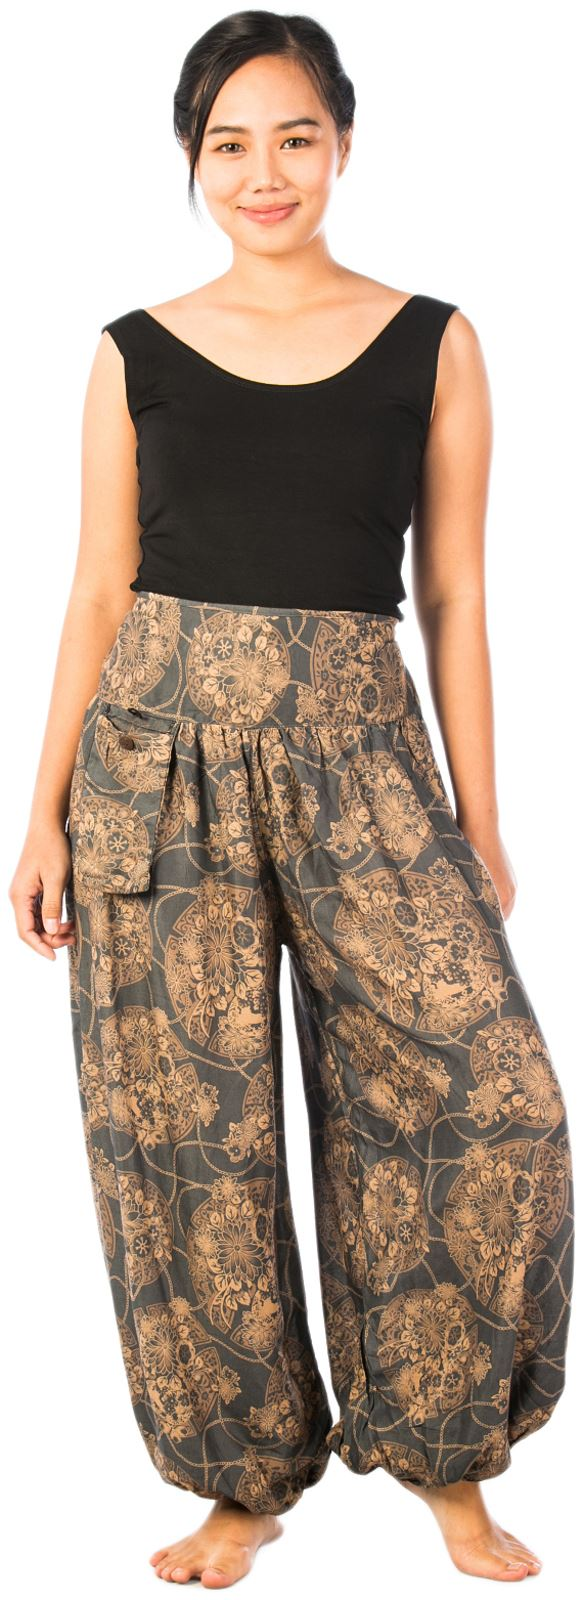 results for patterned baggy trousers Save patterned baggy trousers to get e-mail alerts and updates on your eBay Feed. Unfollow patterned baggy trousers to stop getting updates on your eBay feed.